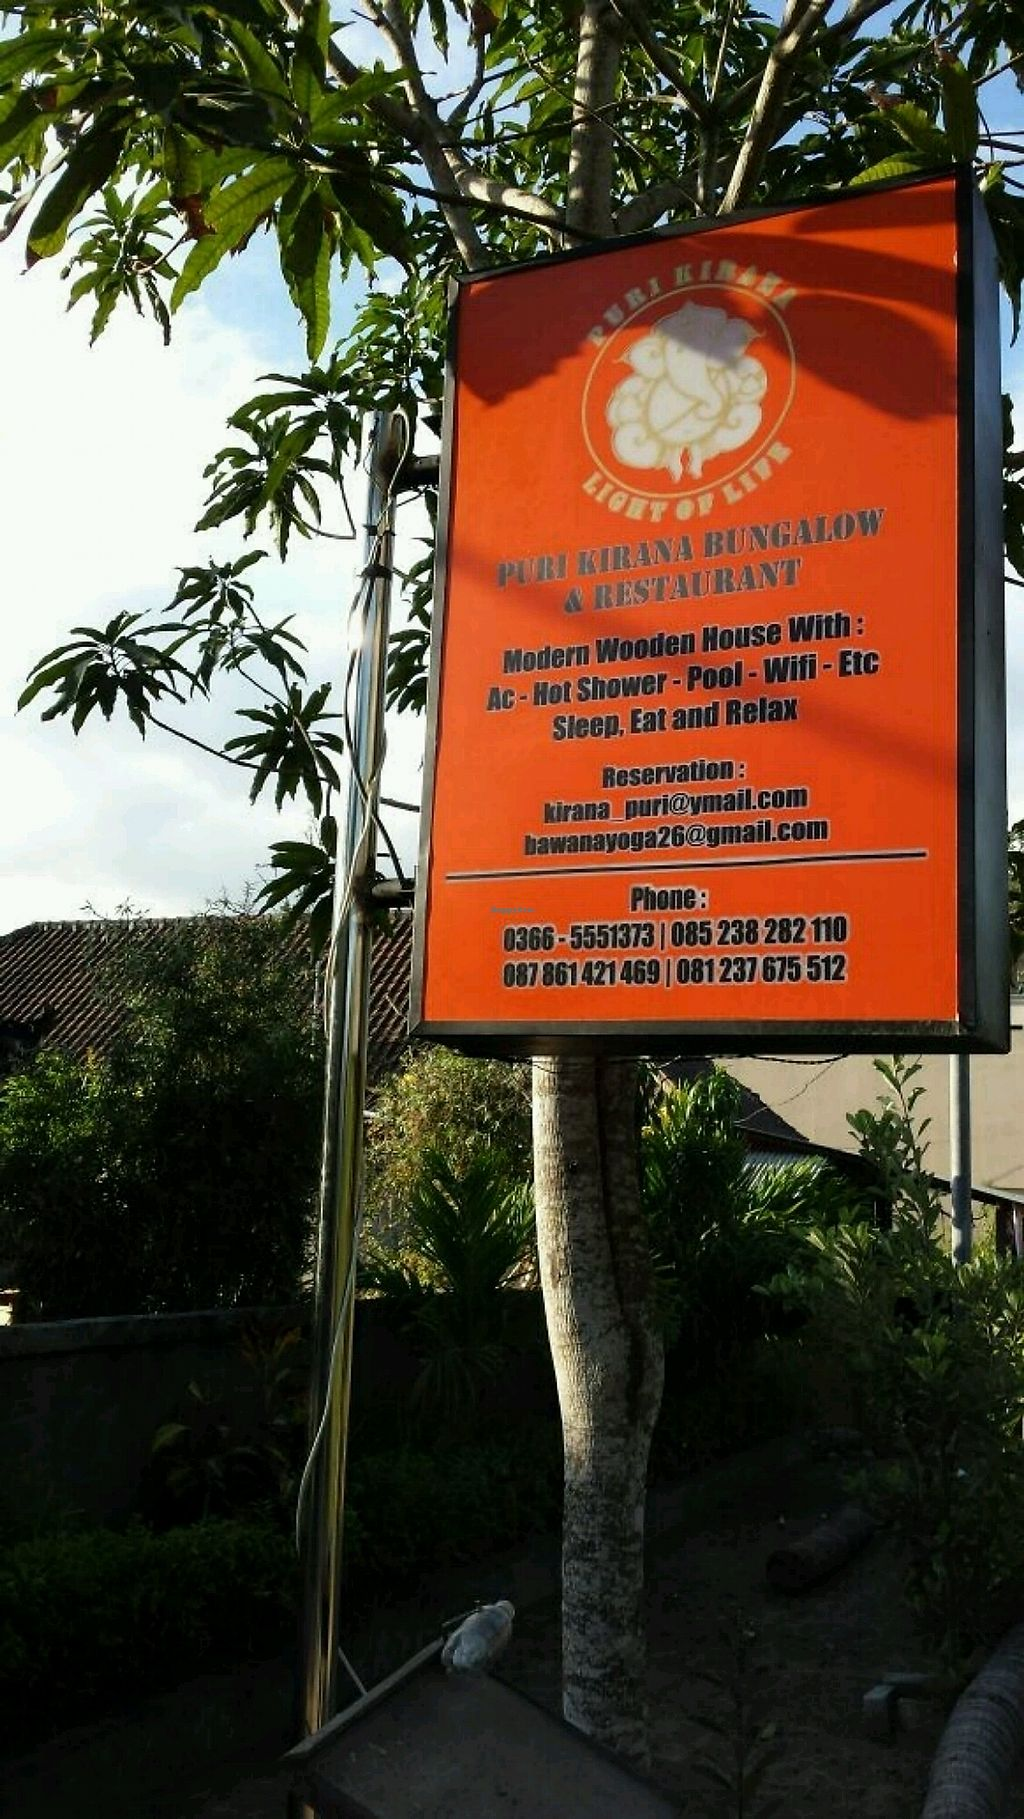 """Photo of Puri Kirana  by <a href=""""/members/profile/VanessaW"""">VanessaW</a> <br/>Restaurant sign  <br/> August 16, 2017  - <a href='/contact/abuse/image/56640/293224'>Report</a>"""